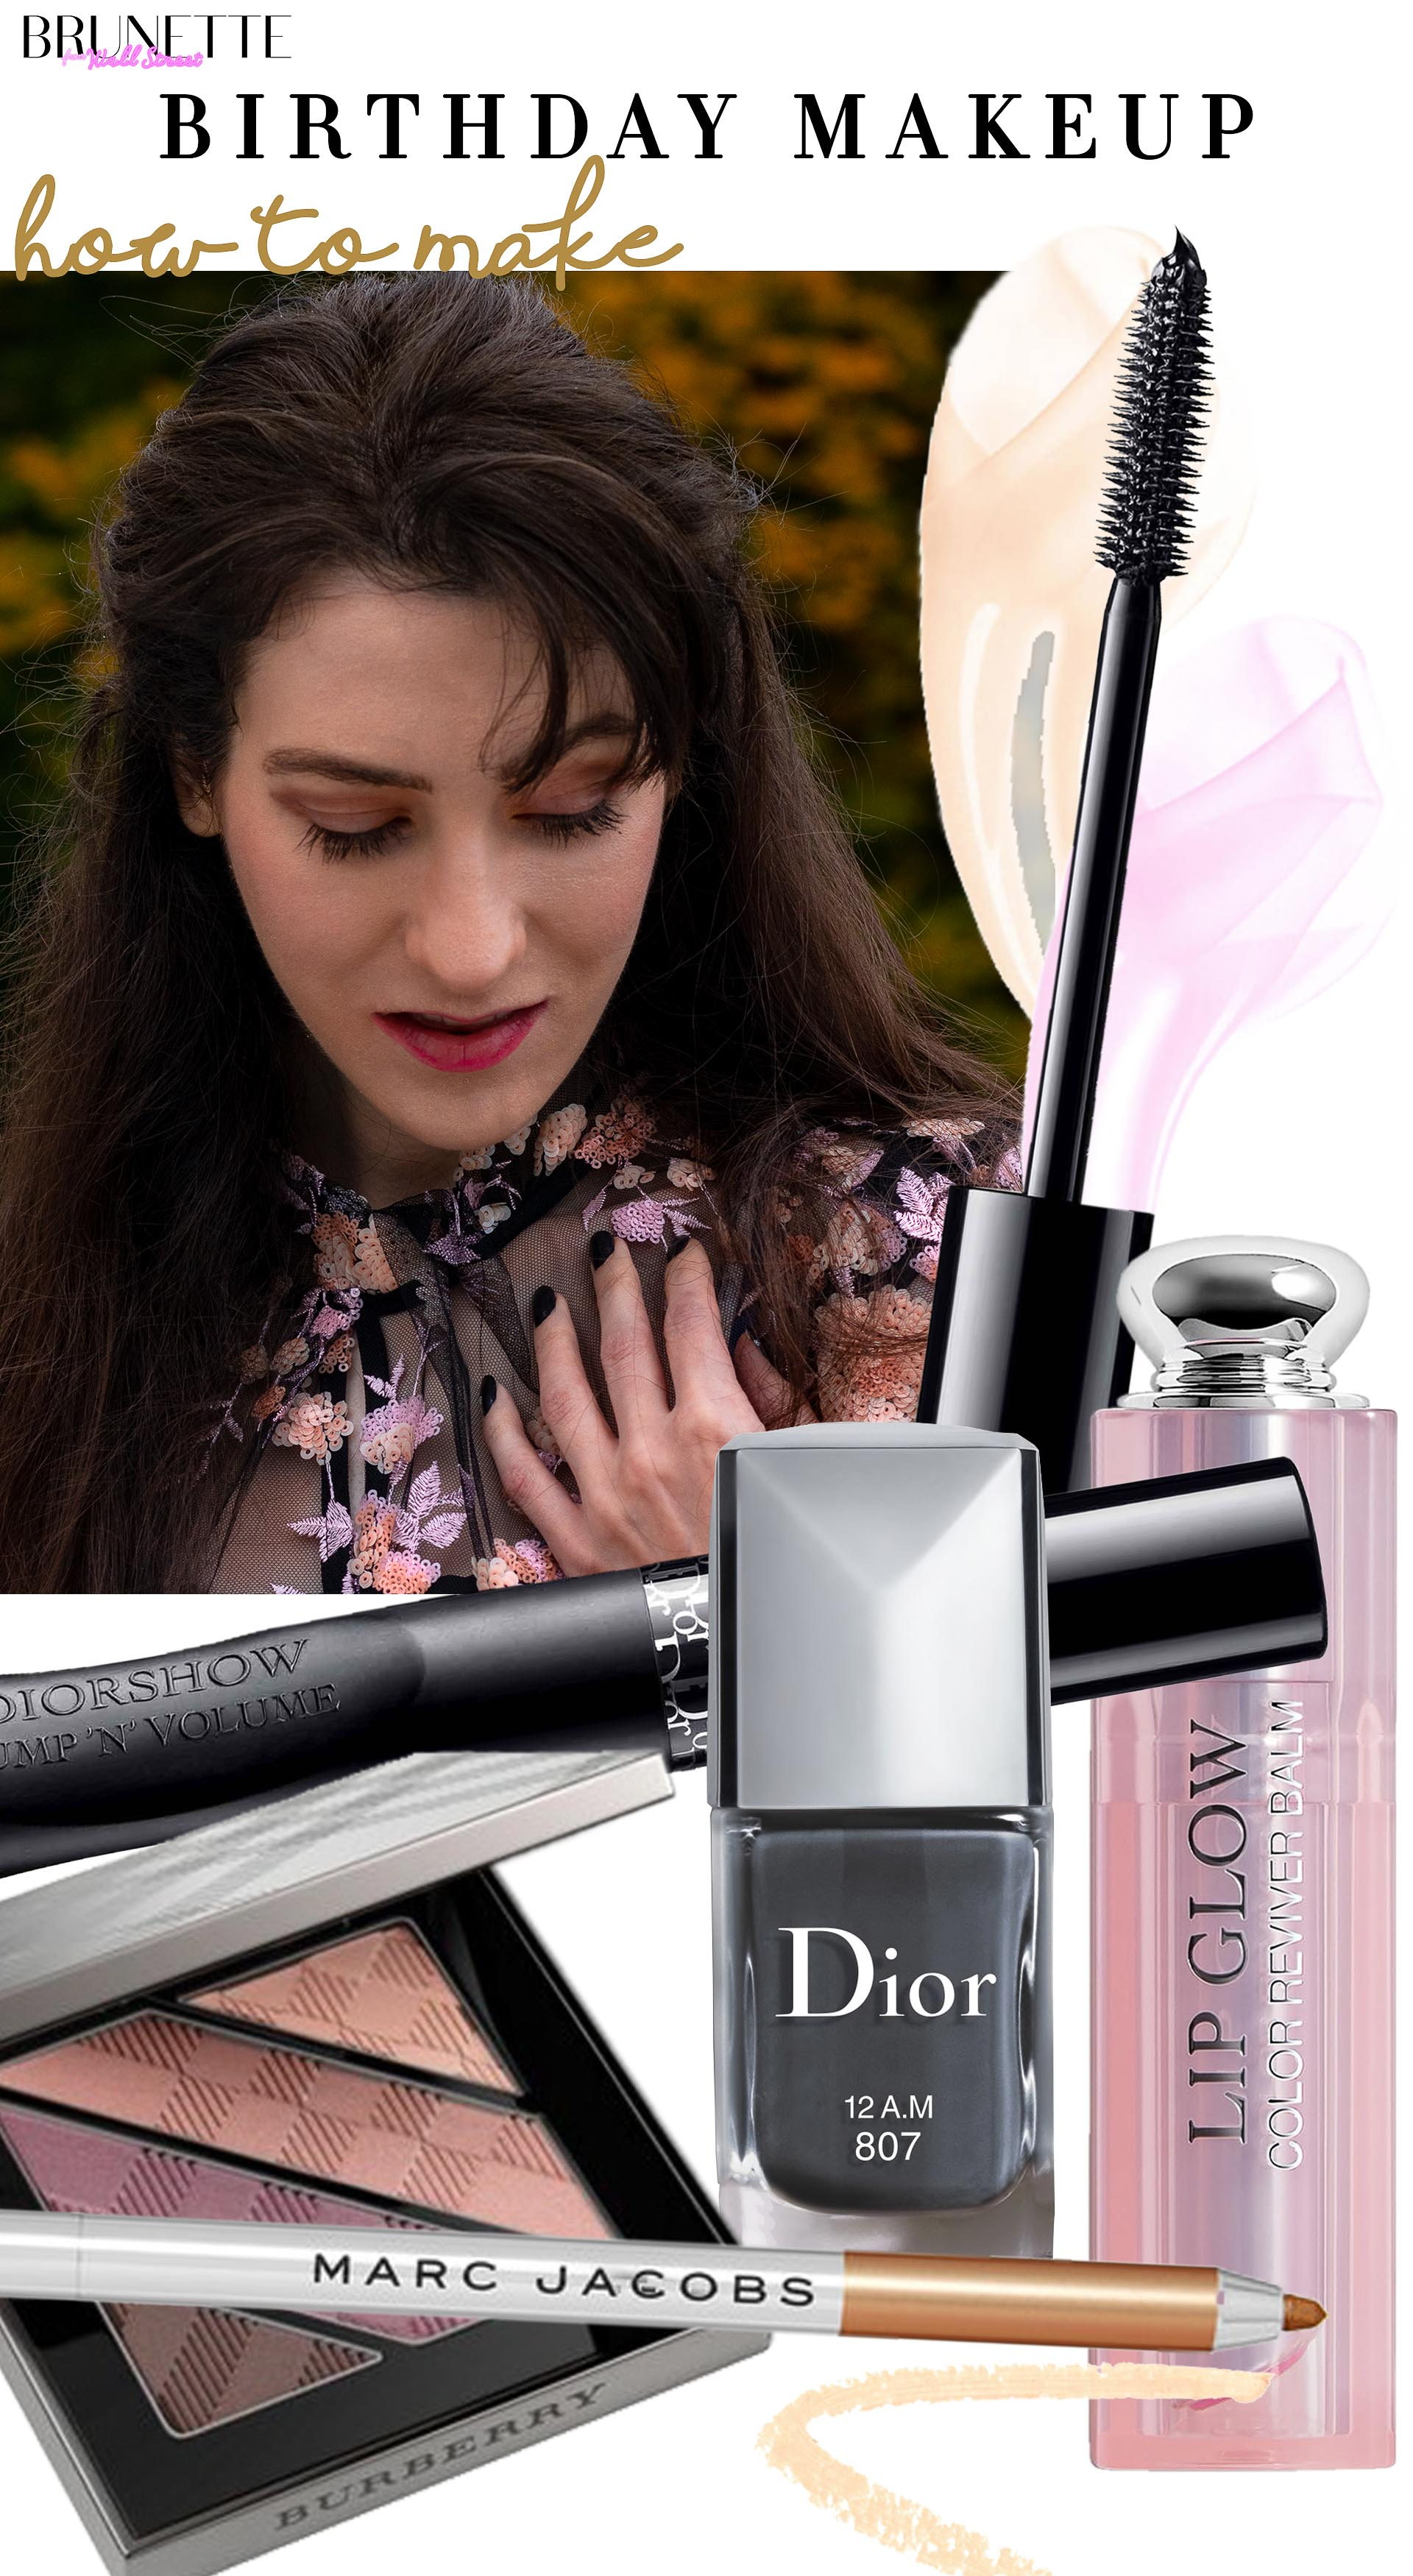 Brunette from Wall Street how to do birthday party makeup dior mascara lipglow burberry plum eyeshadows marc jacobs beauty eyeliner